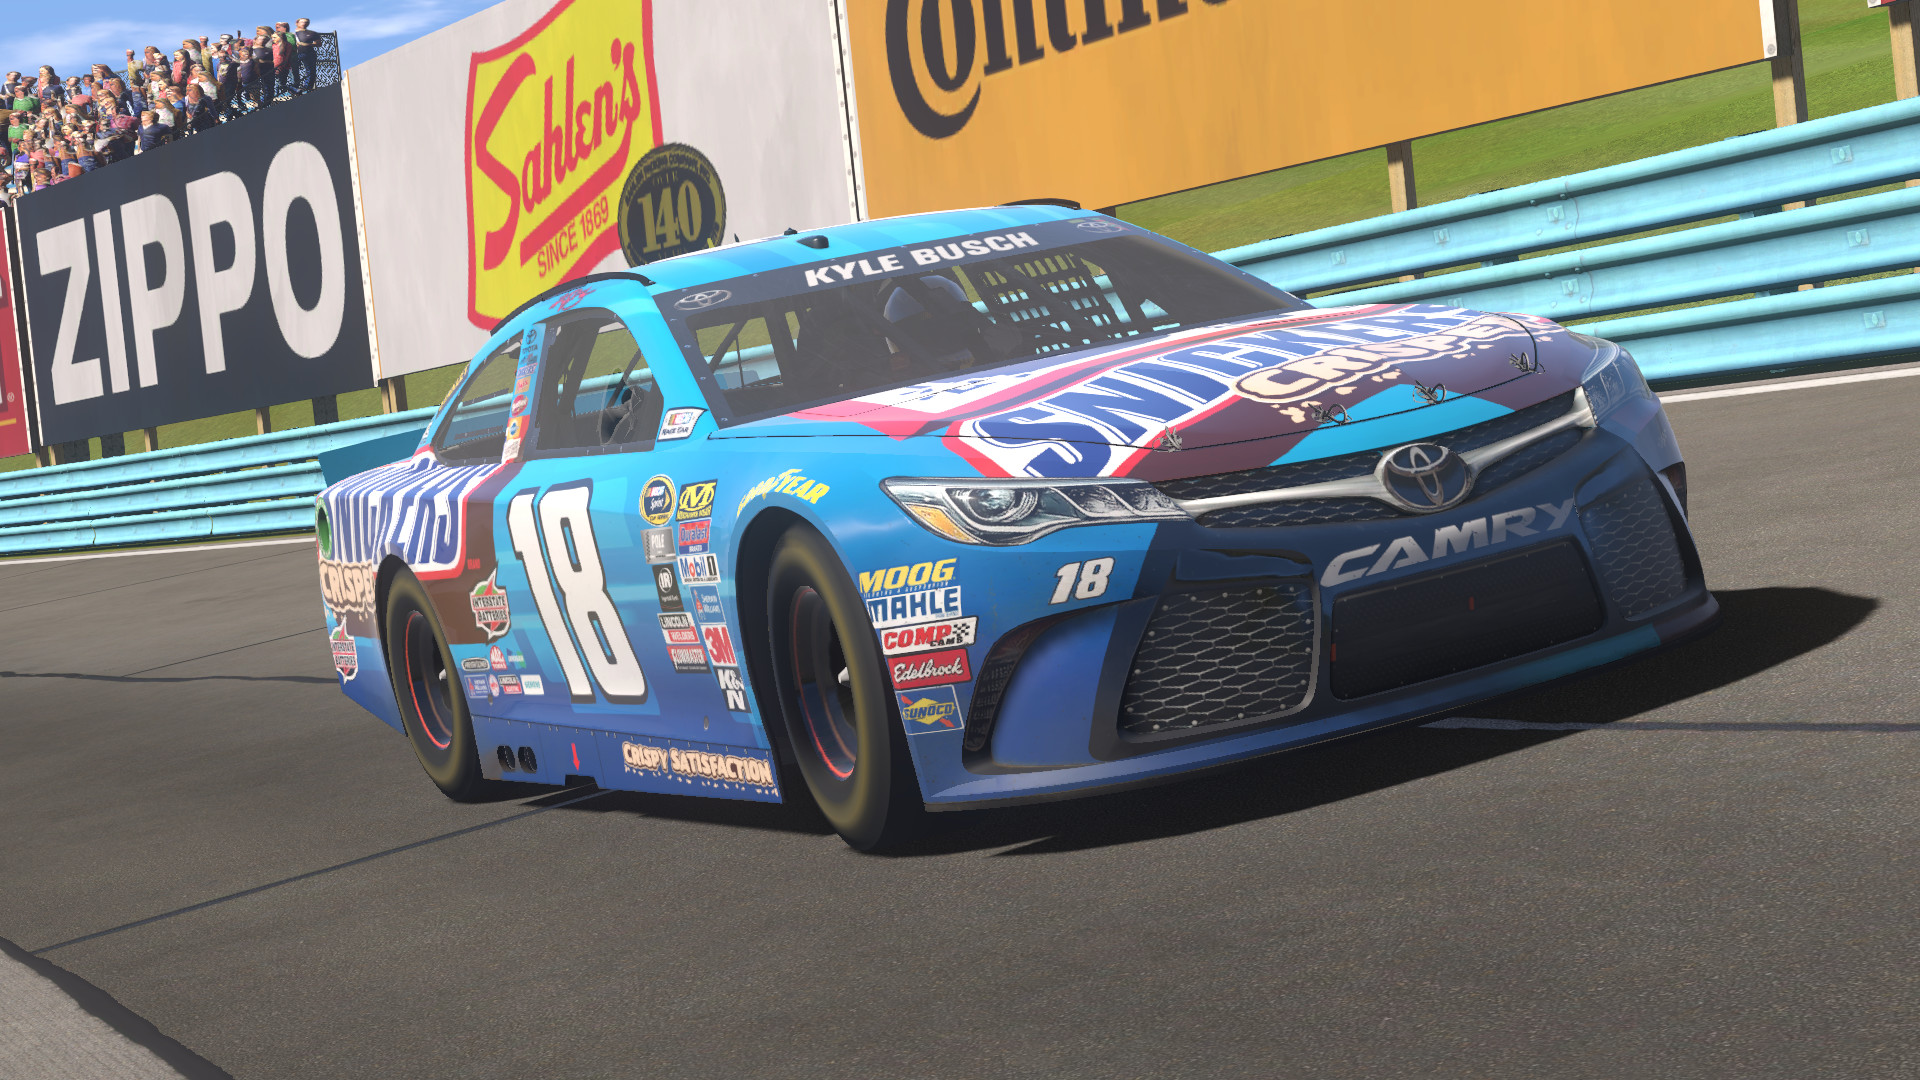 Toyota Paint Scheme Pack 4 on Steam